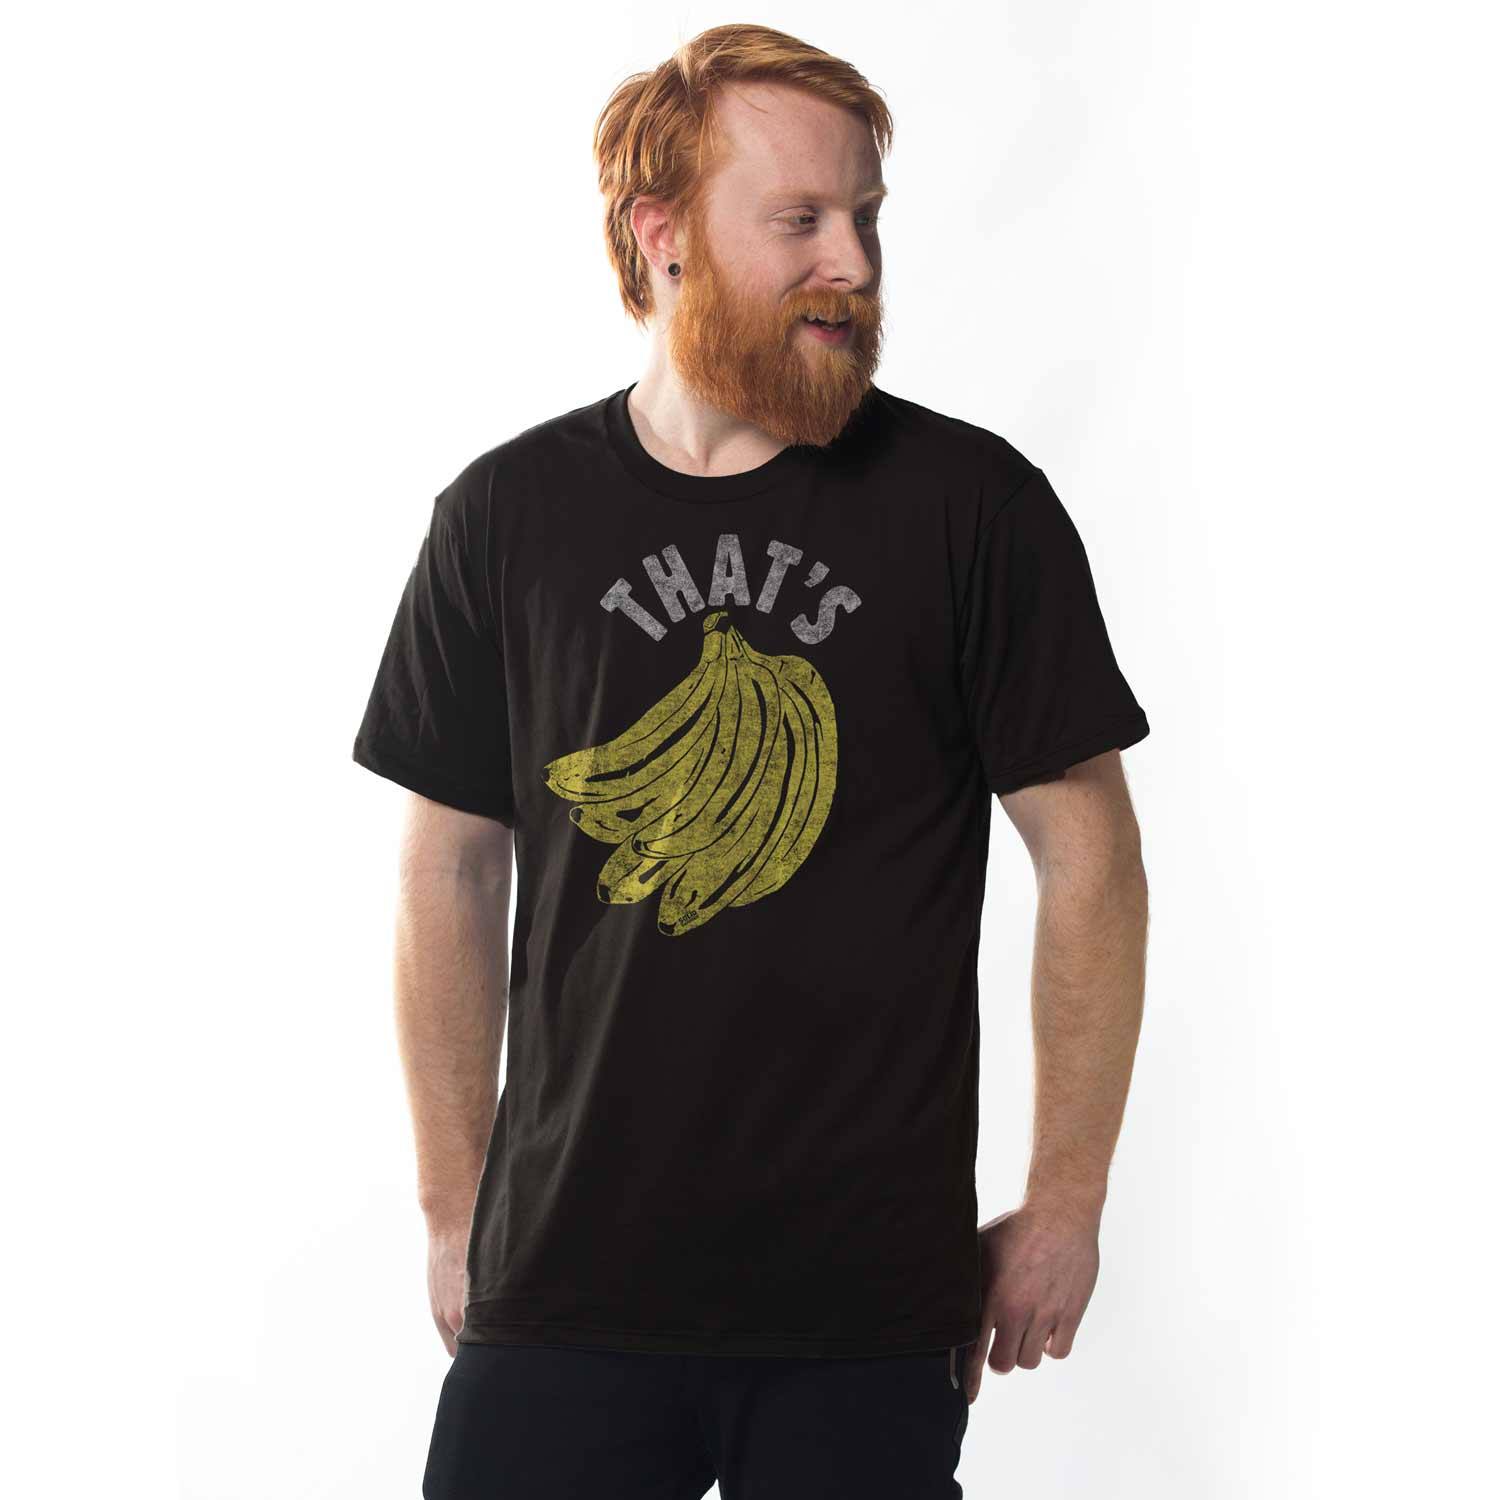 That's Bananas T-shirt